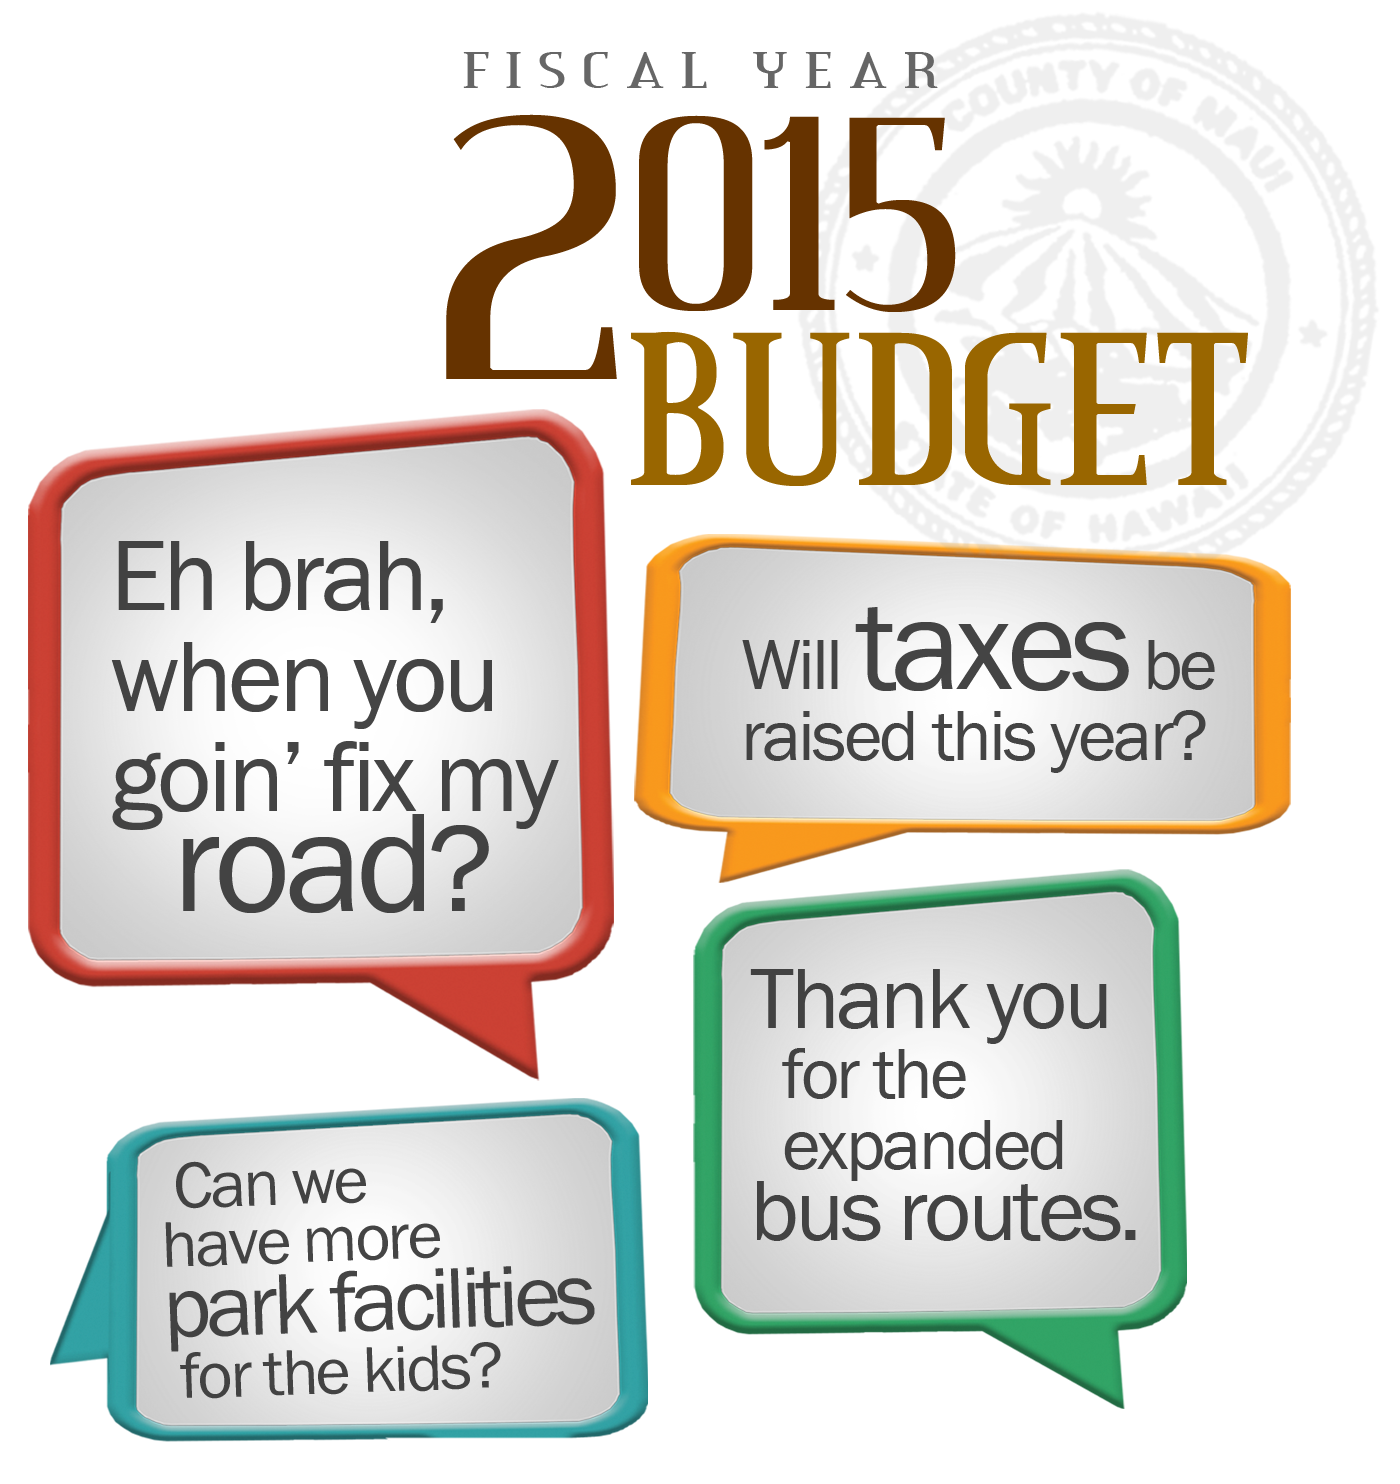 Maui County, HI - Official Website - 2015 Budget